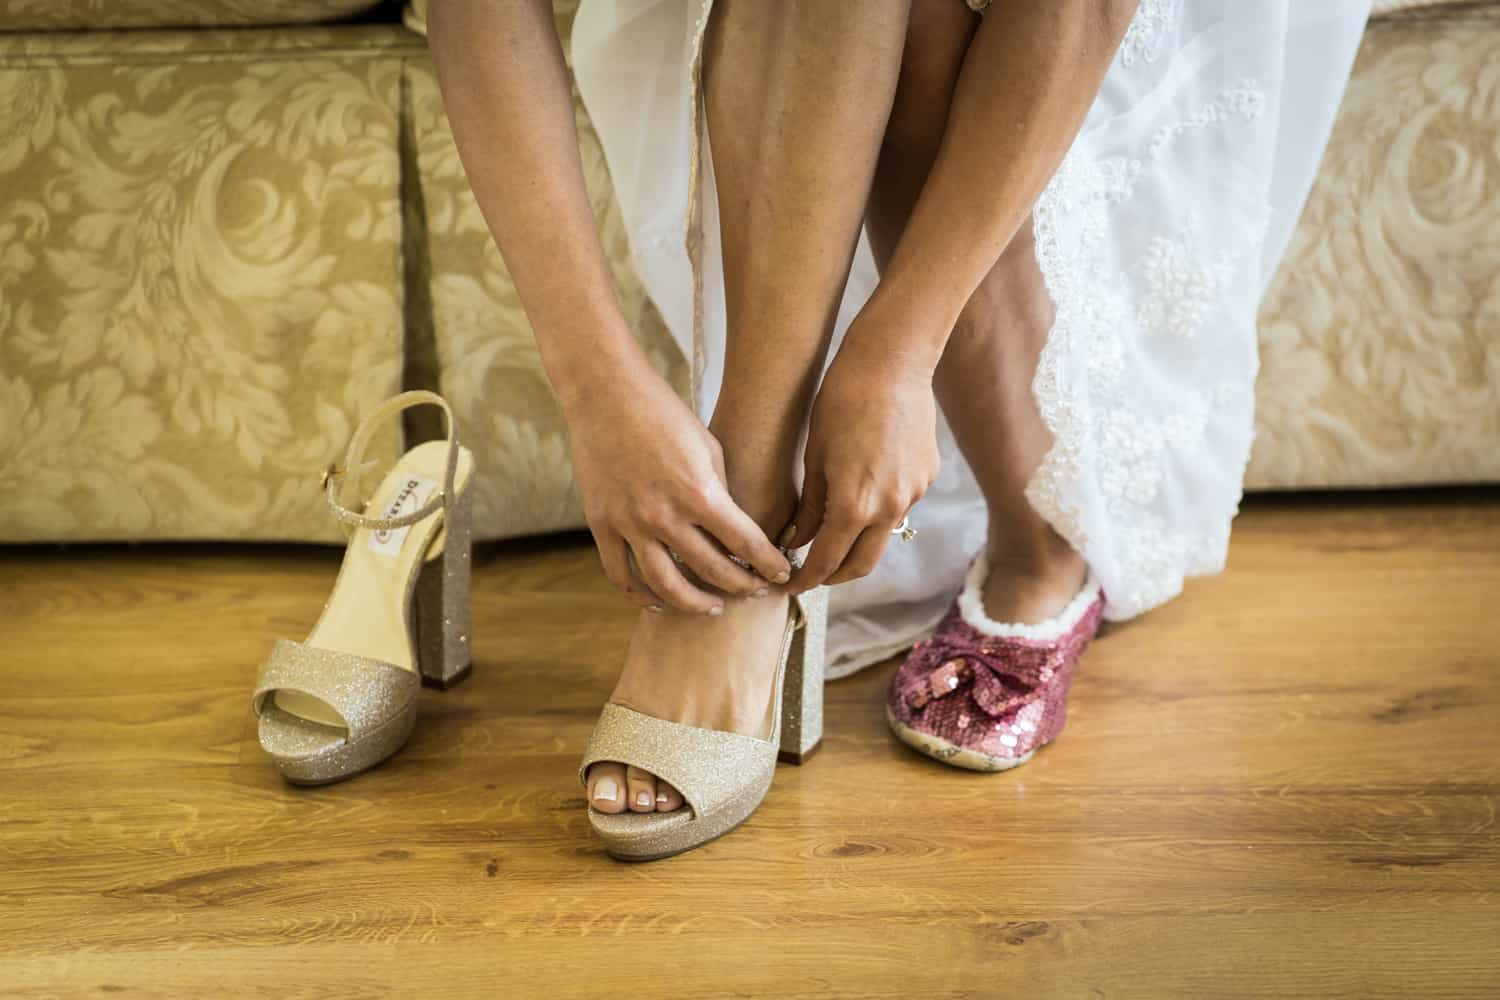 Woman's hands putting on high heel and other foot in pink sequin slipper